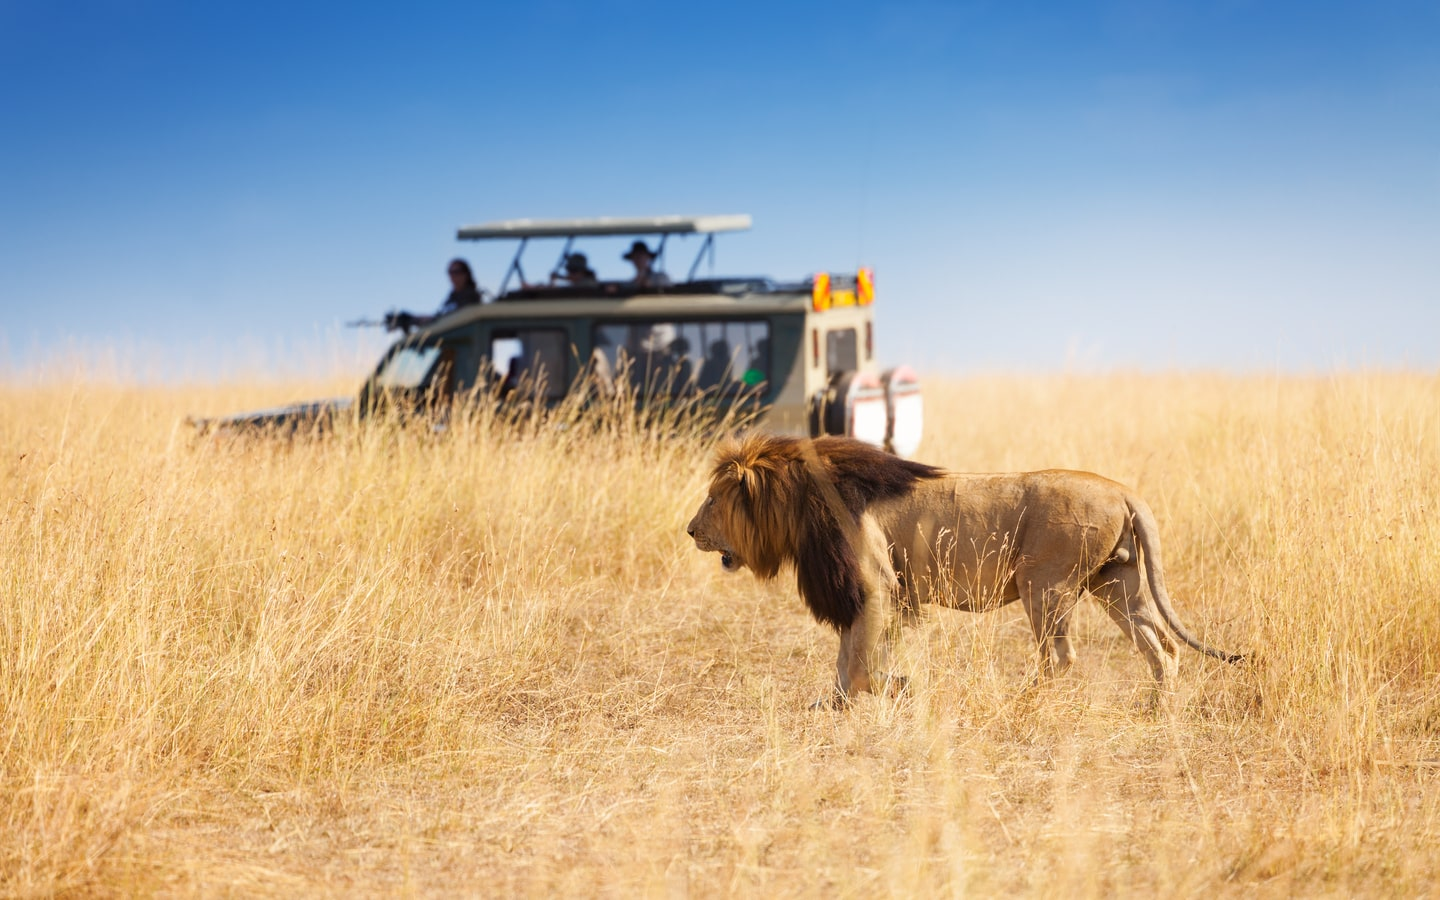 View of safari van spotting a lion in Kenya